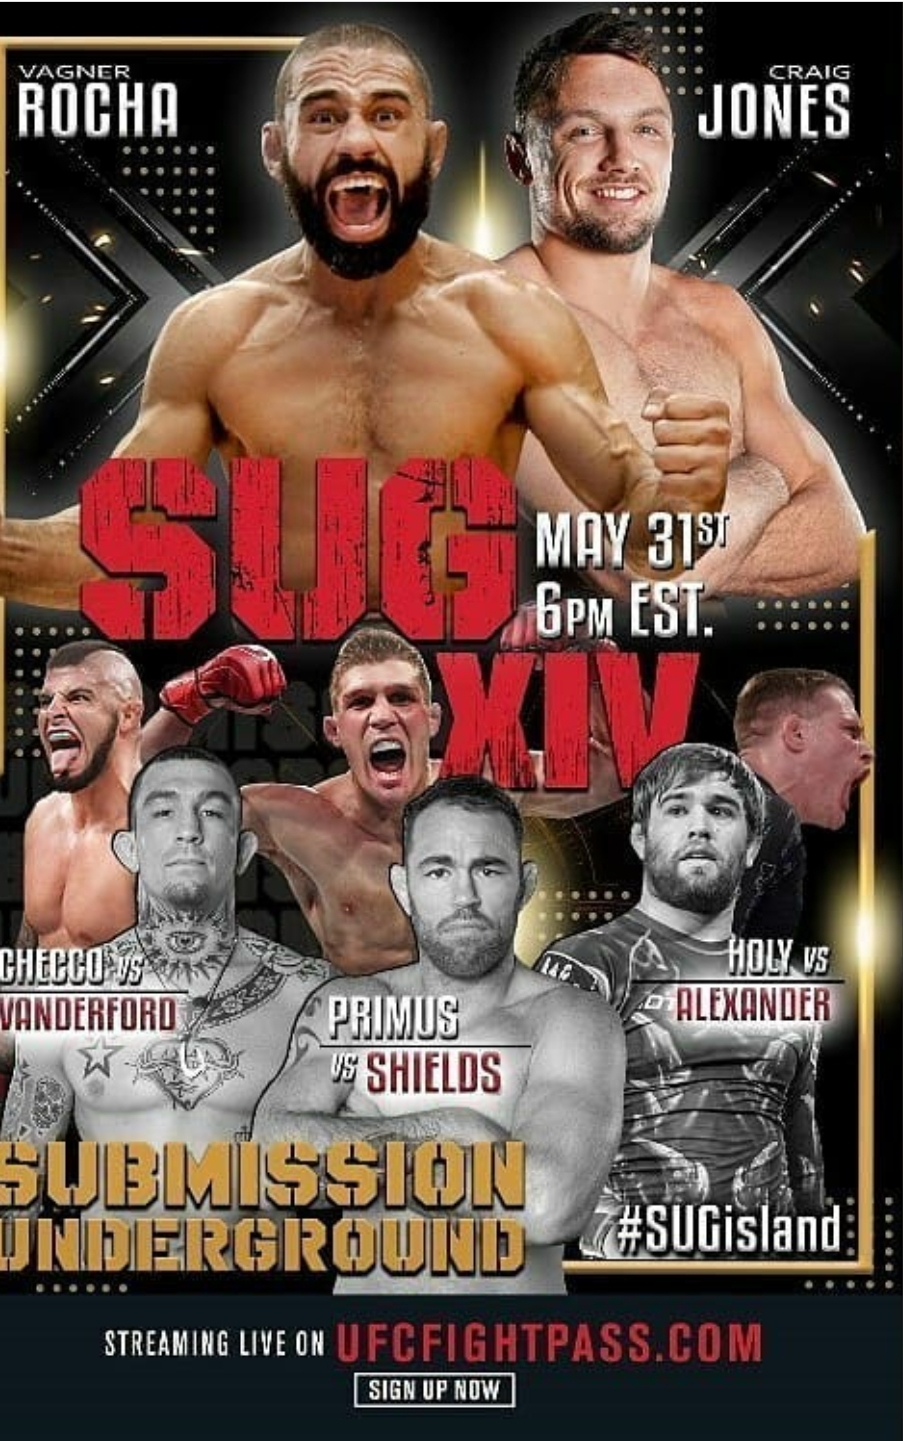 Submission Underground 14 Live Results